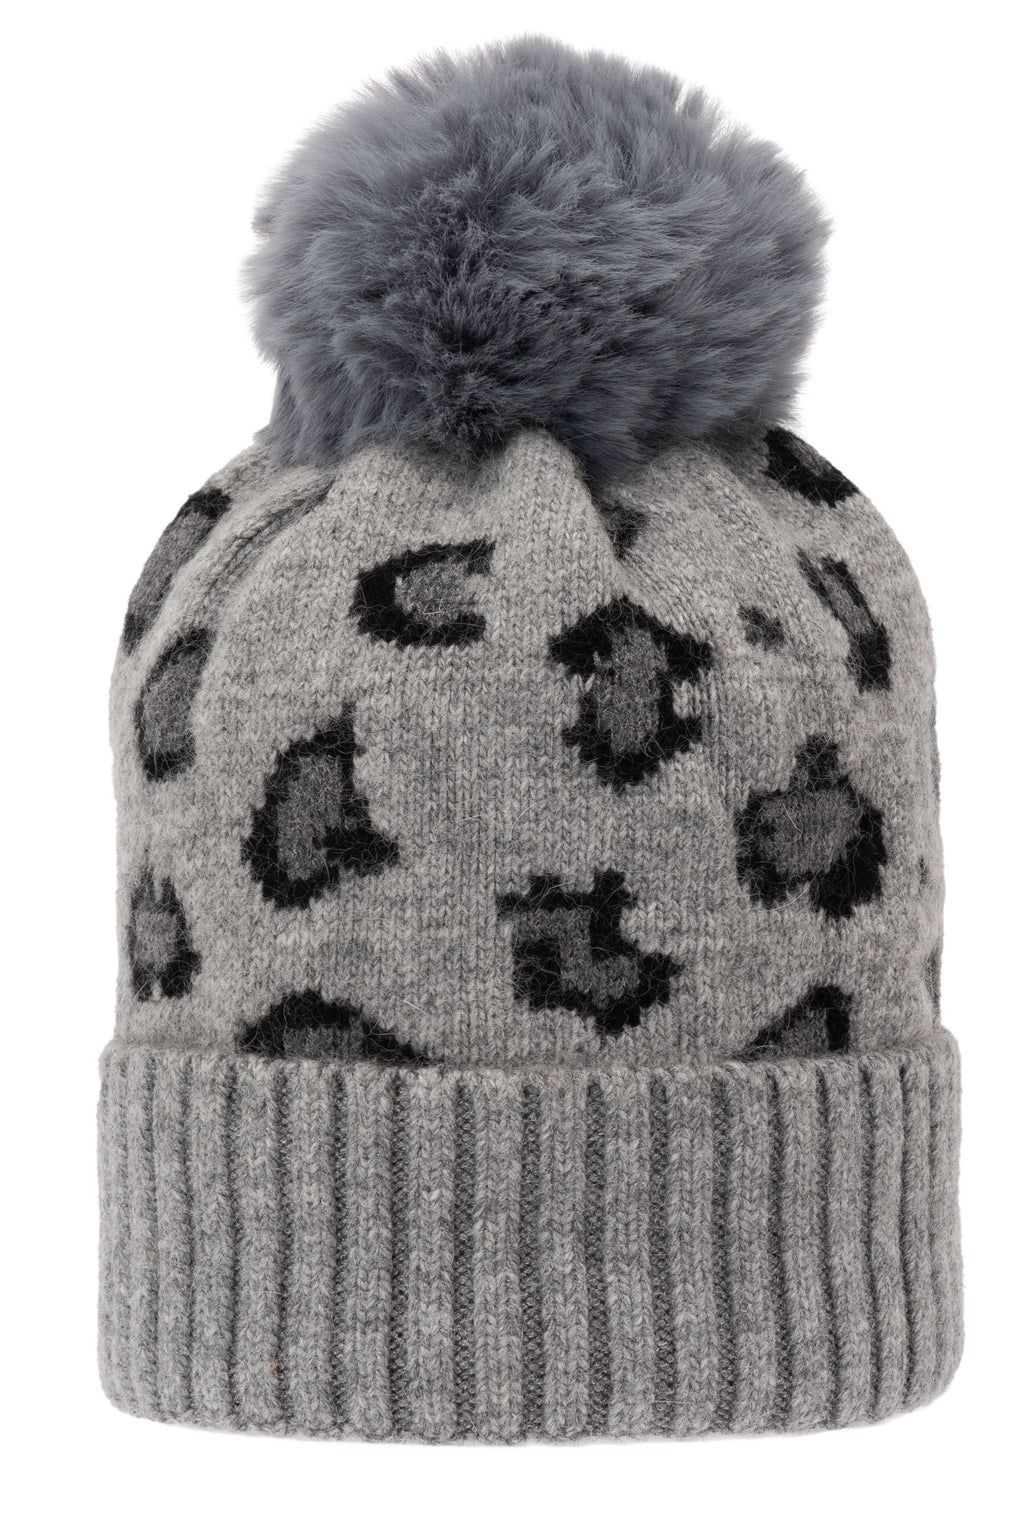 Super Soft Chunky Cashmere Hat with Pom Pom in Grey Leopard